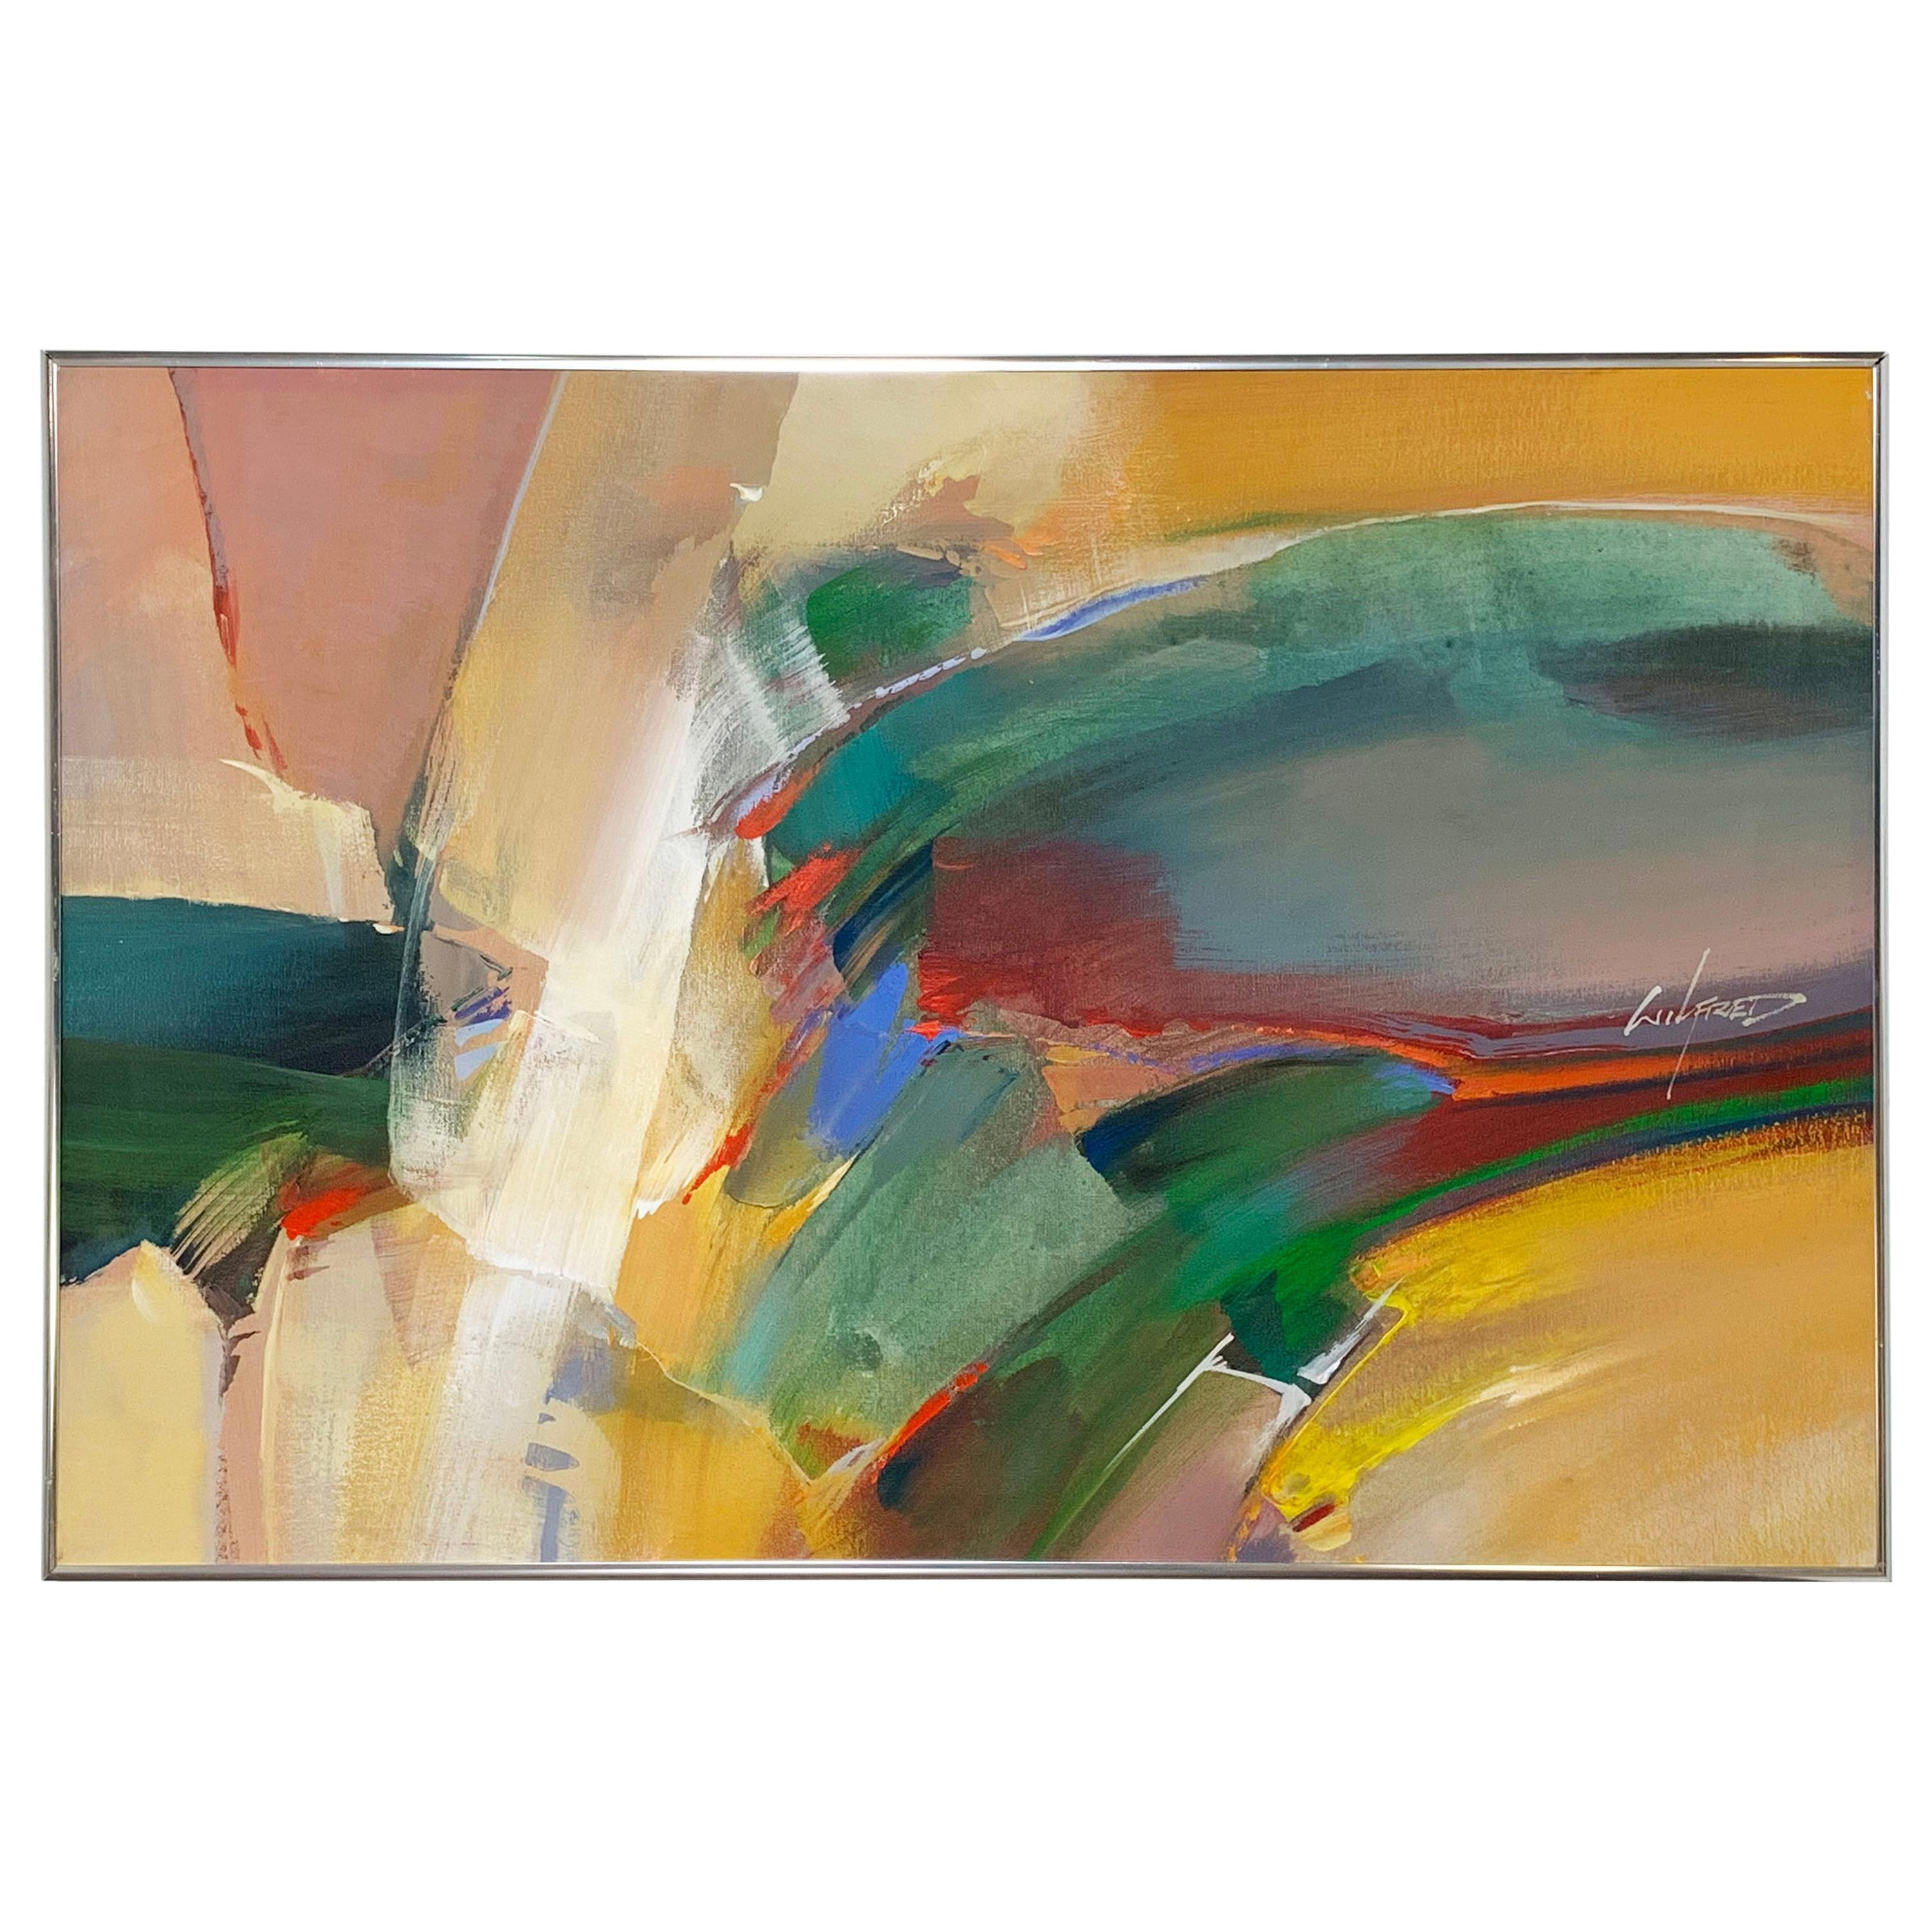 Abstract Expressionist Painting by Wilfred Lang, Ca. 1970s